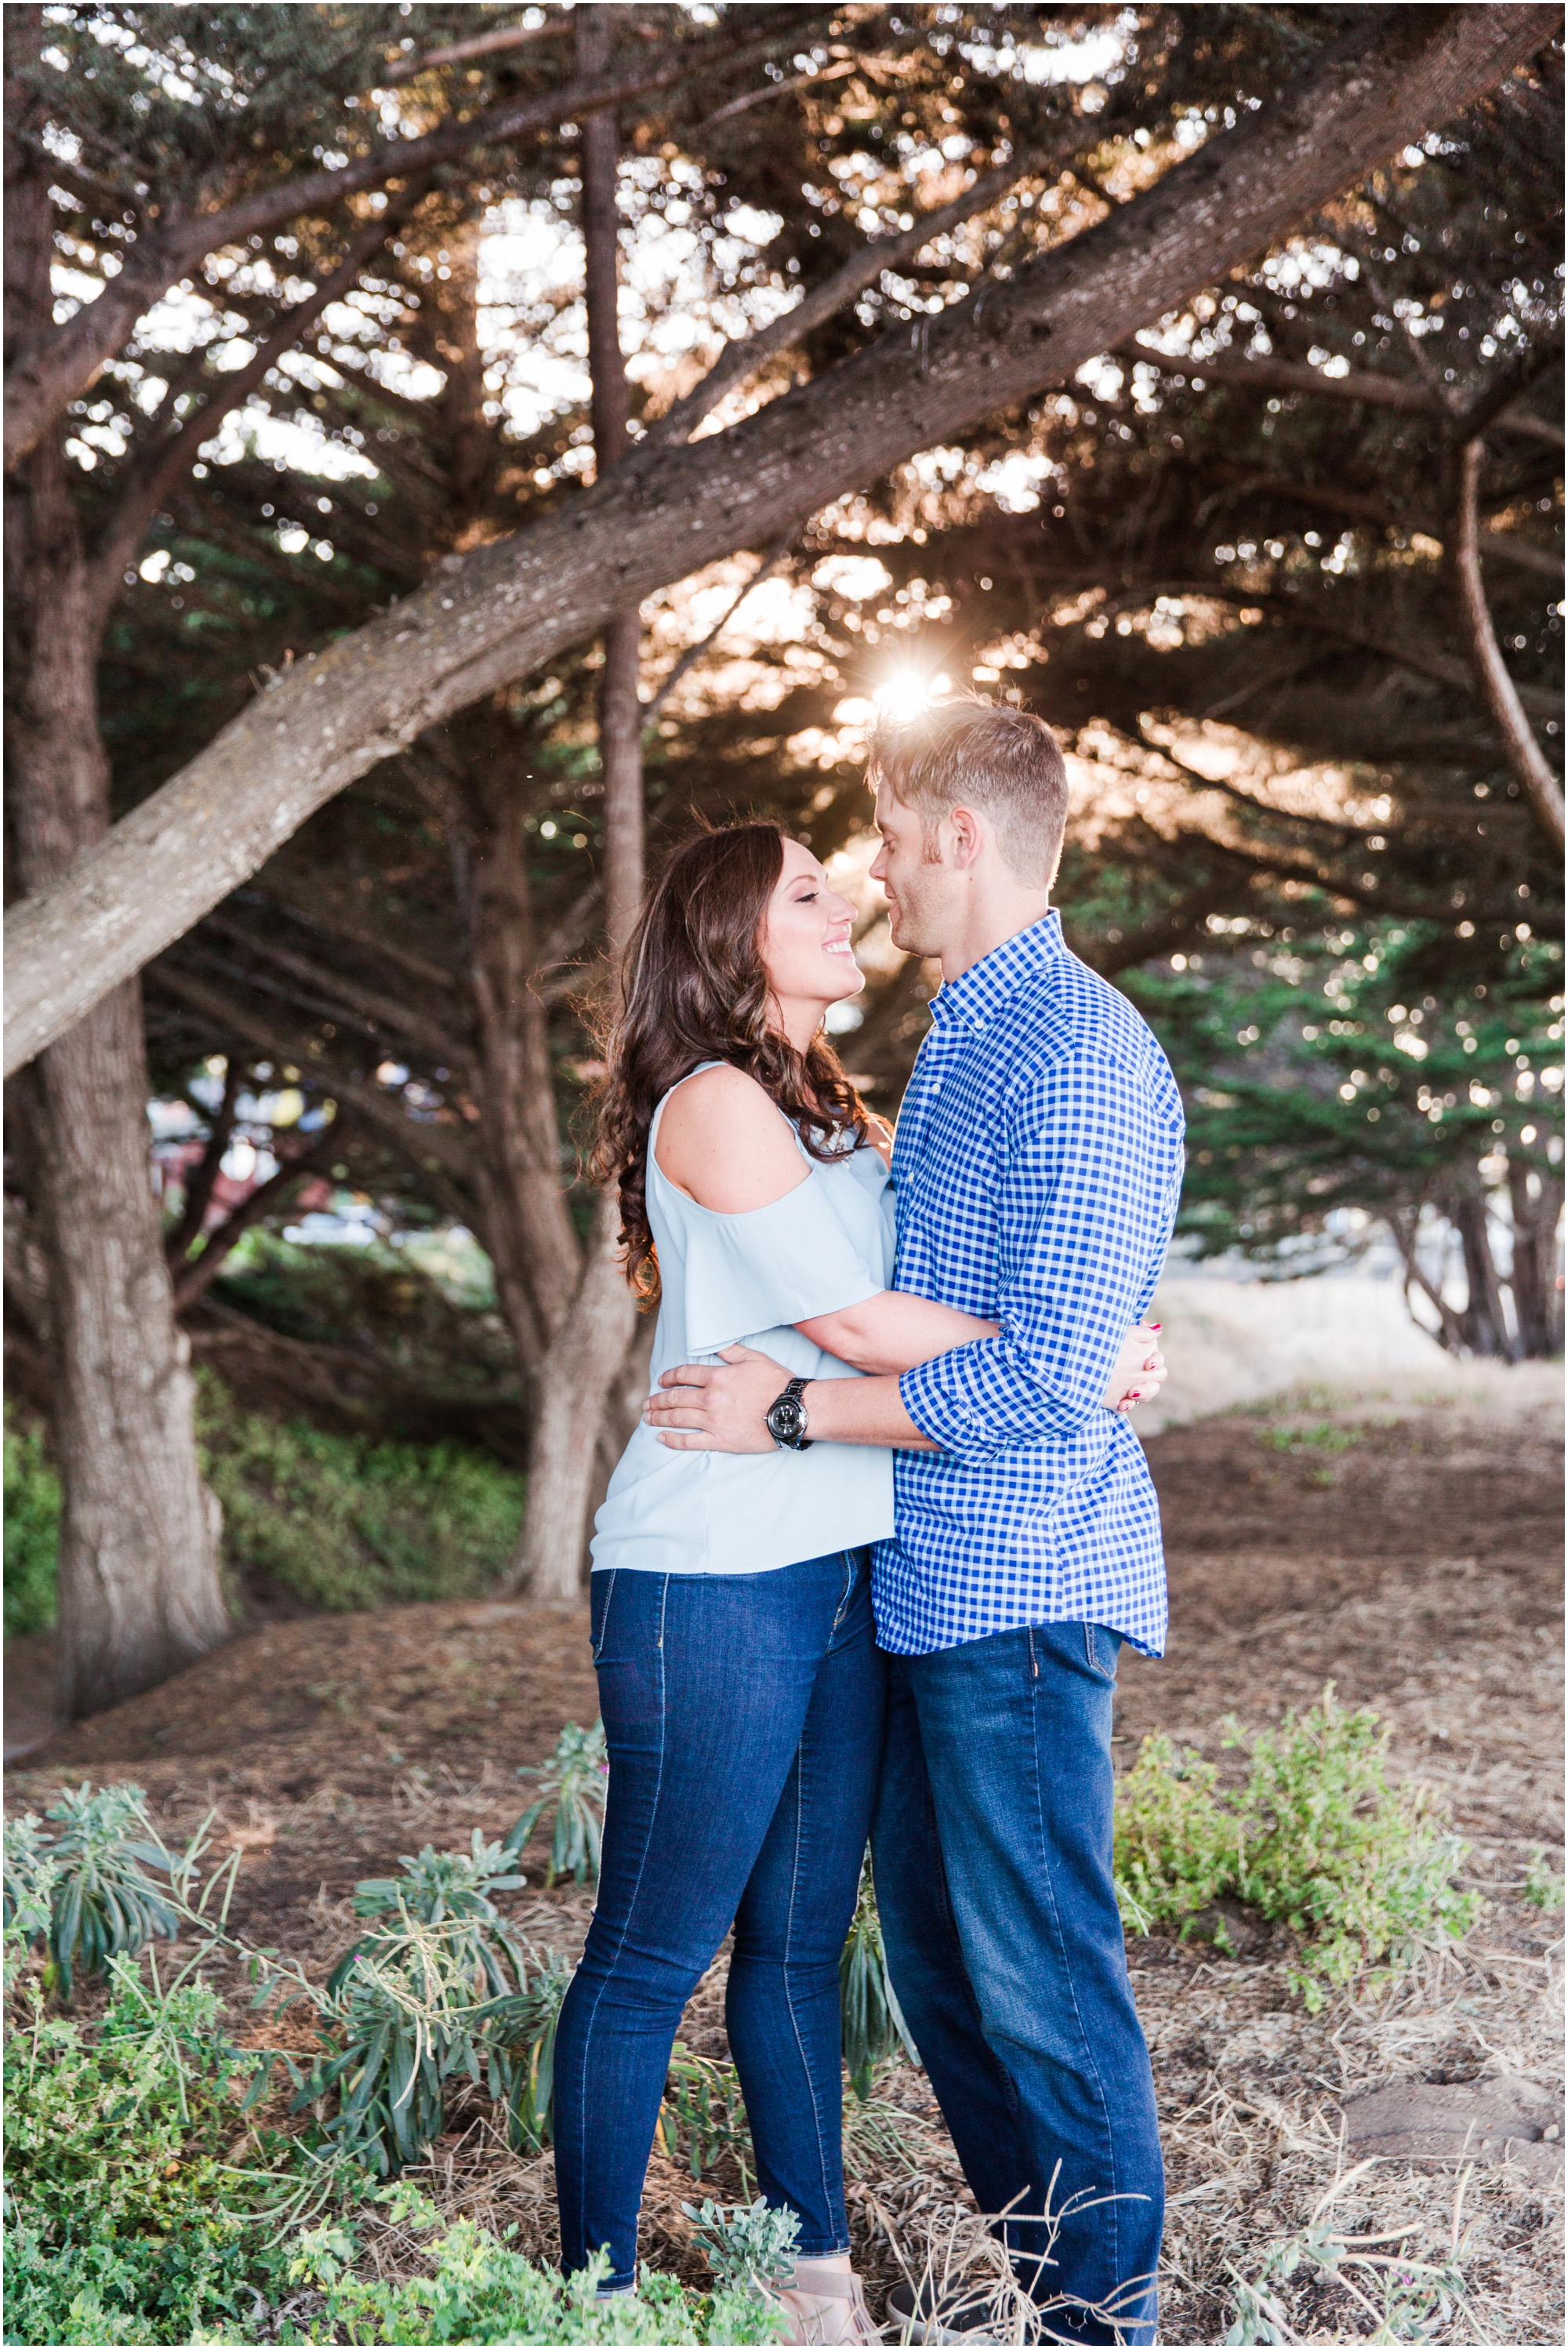 Berwick Park Monterey engagement pictures by Briana Calderon Photography_2387.jpg